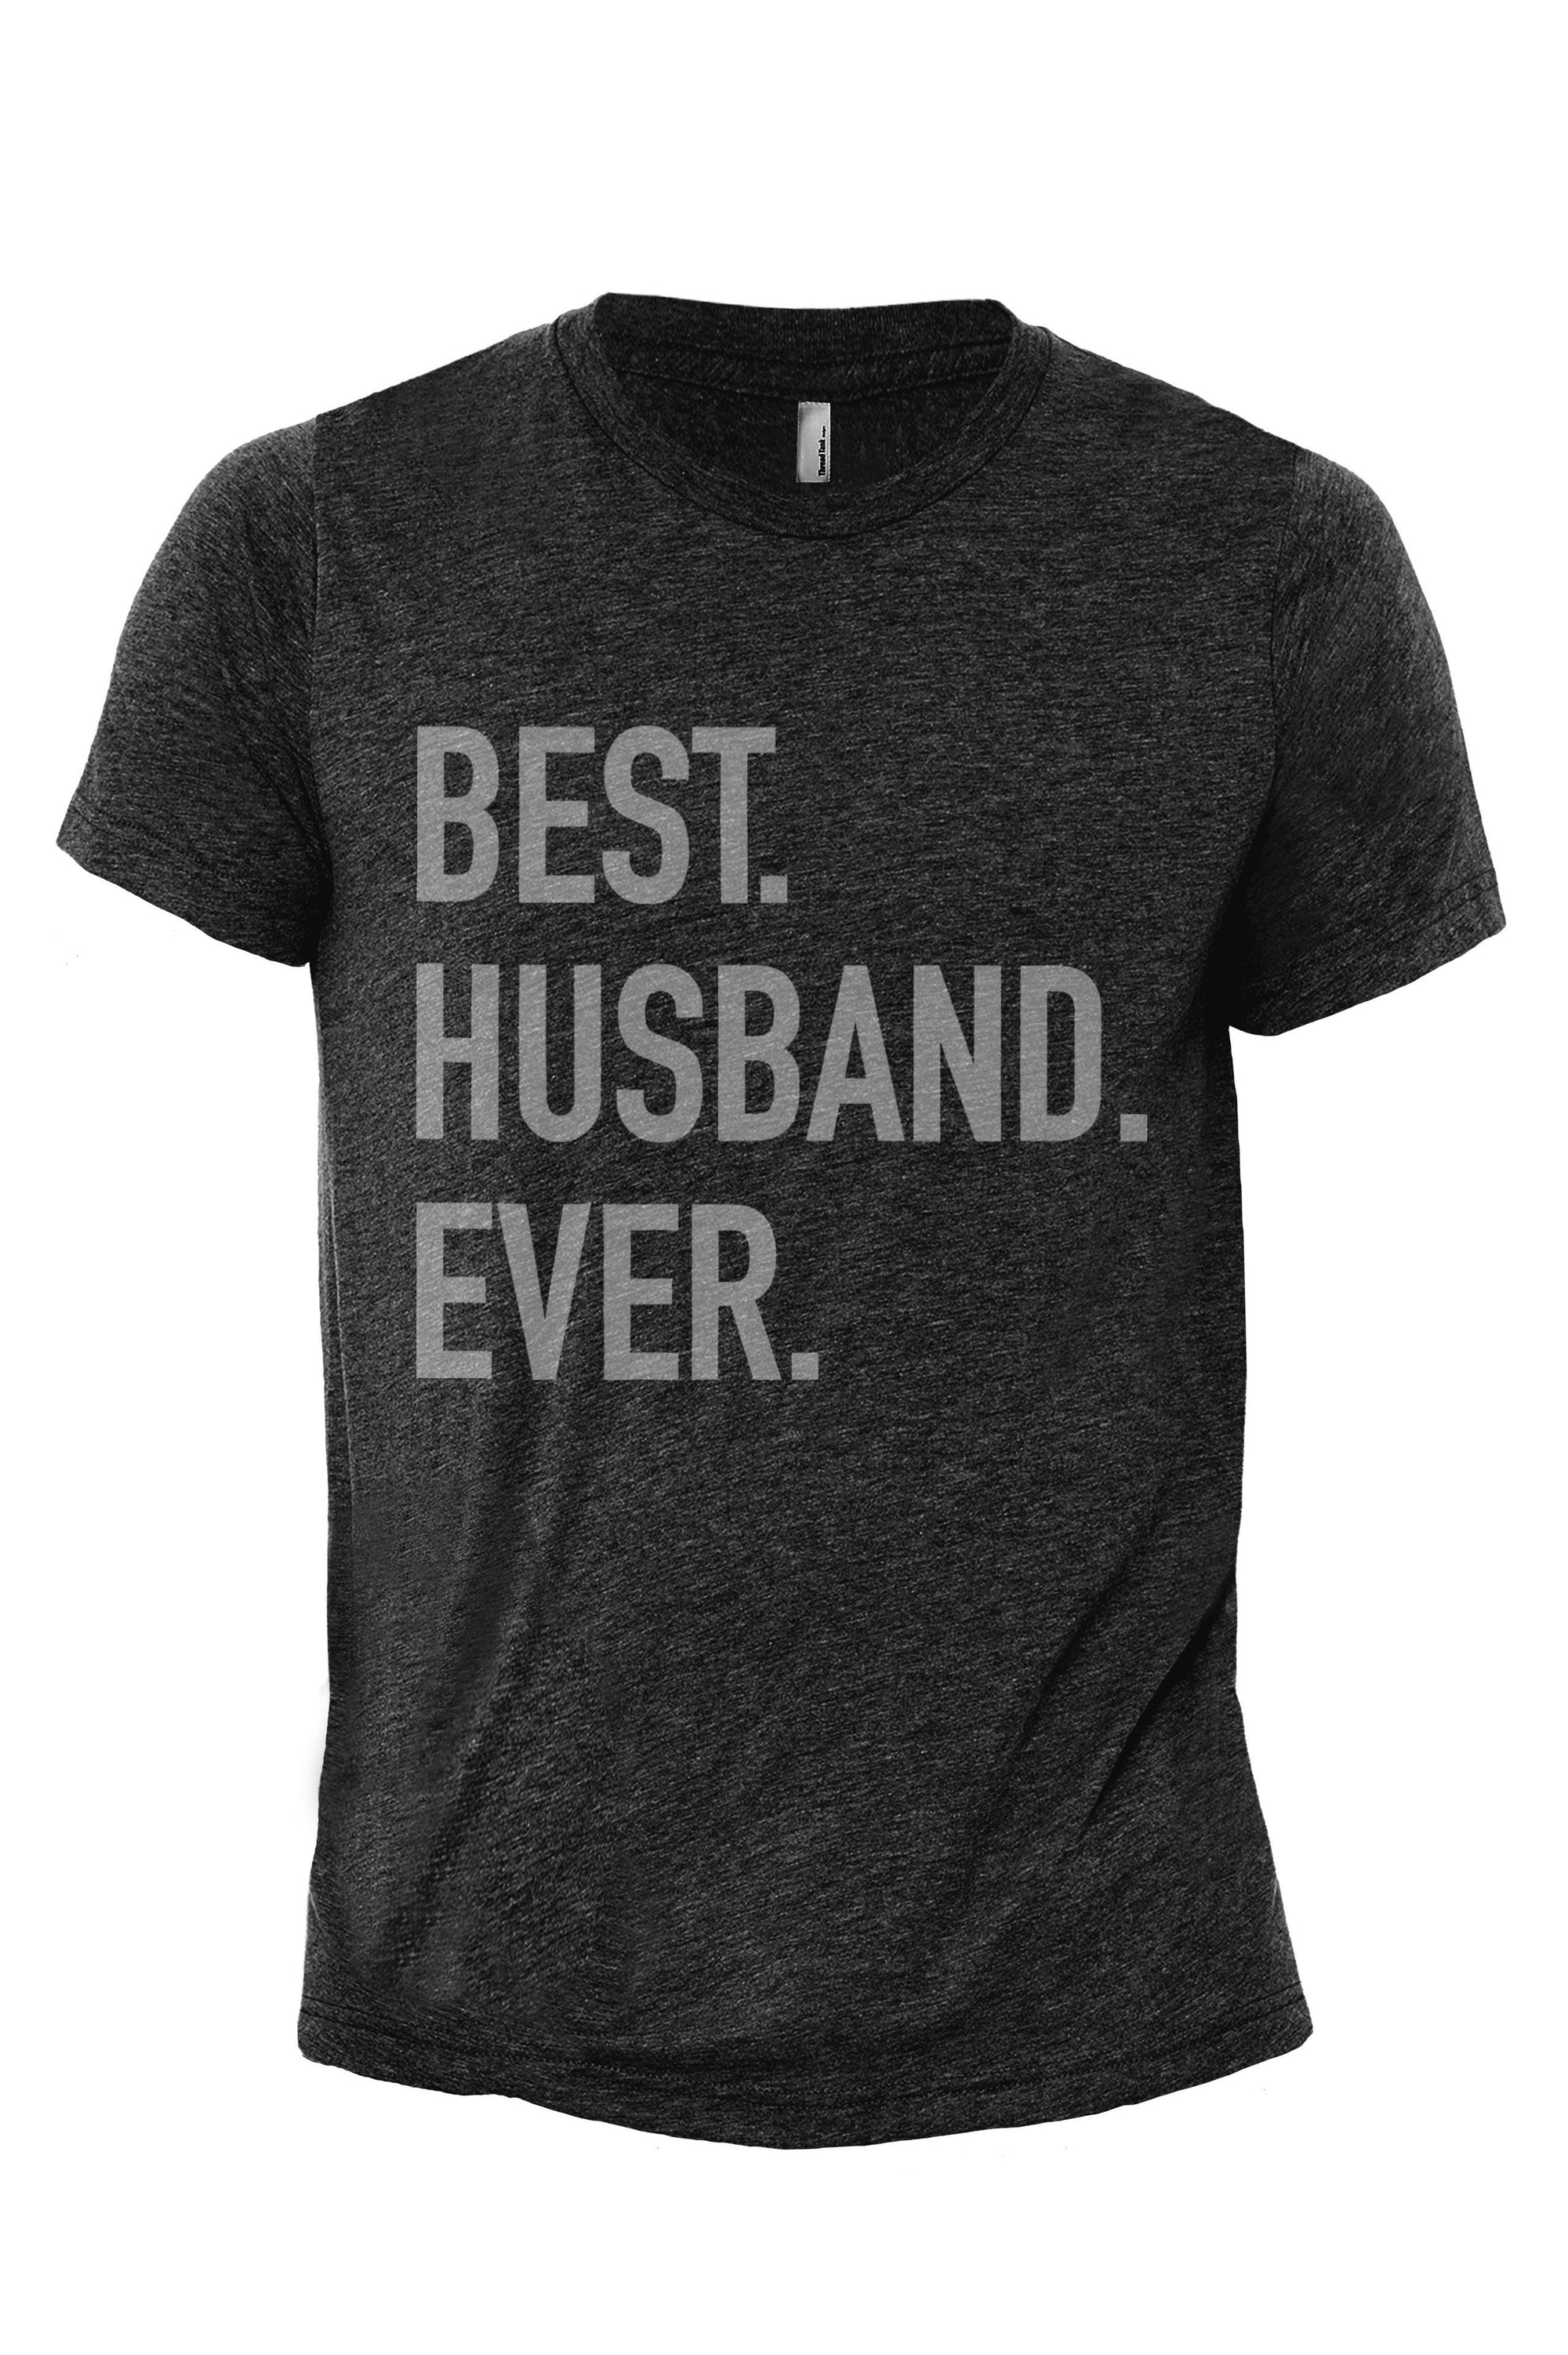 Best Husband Ever Heather Grey Printed Graphic Men's Crew T-Shirt Tee